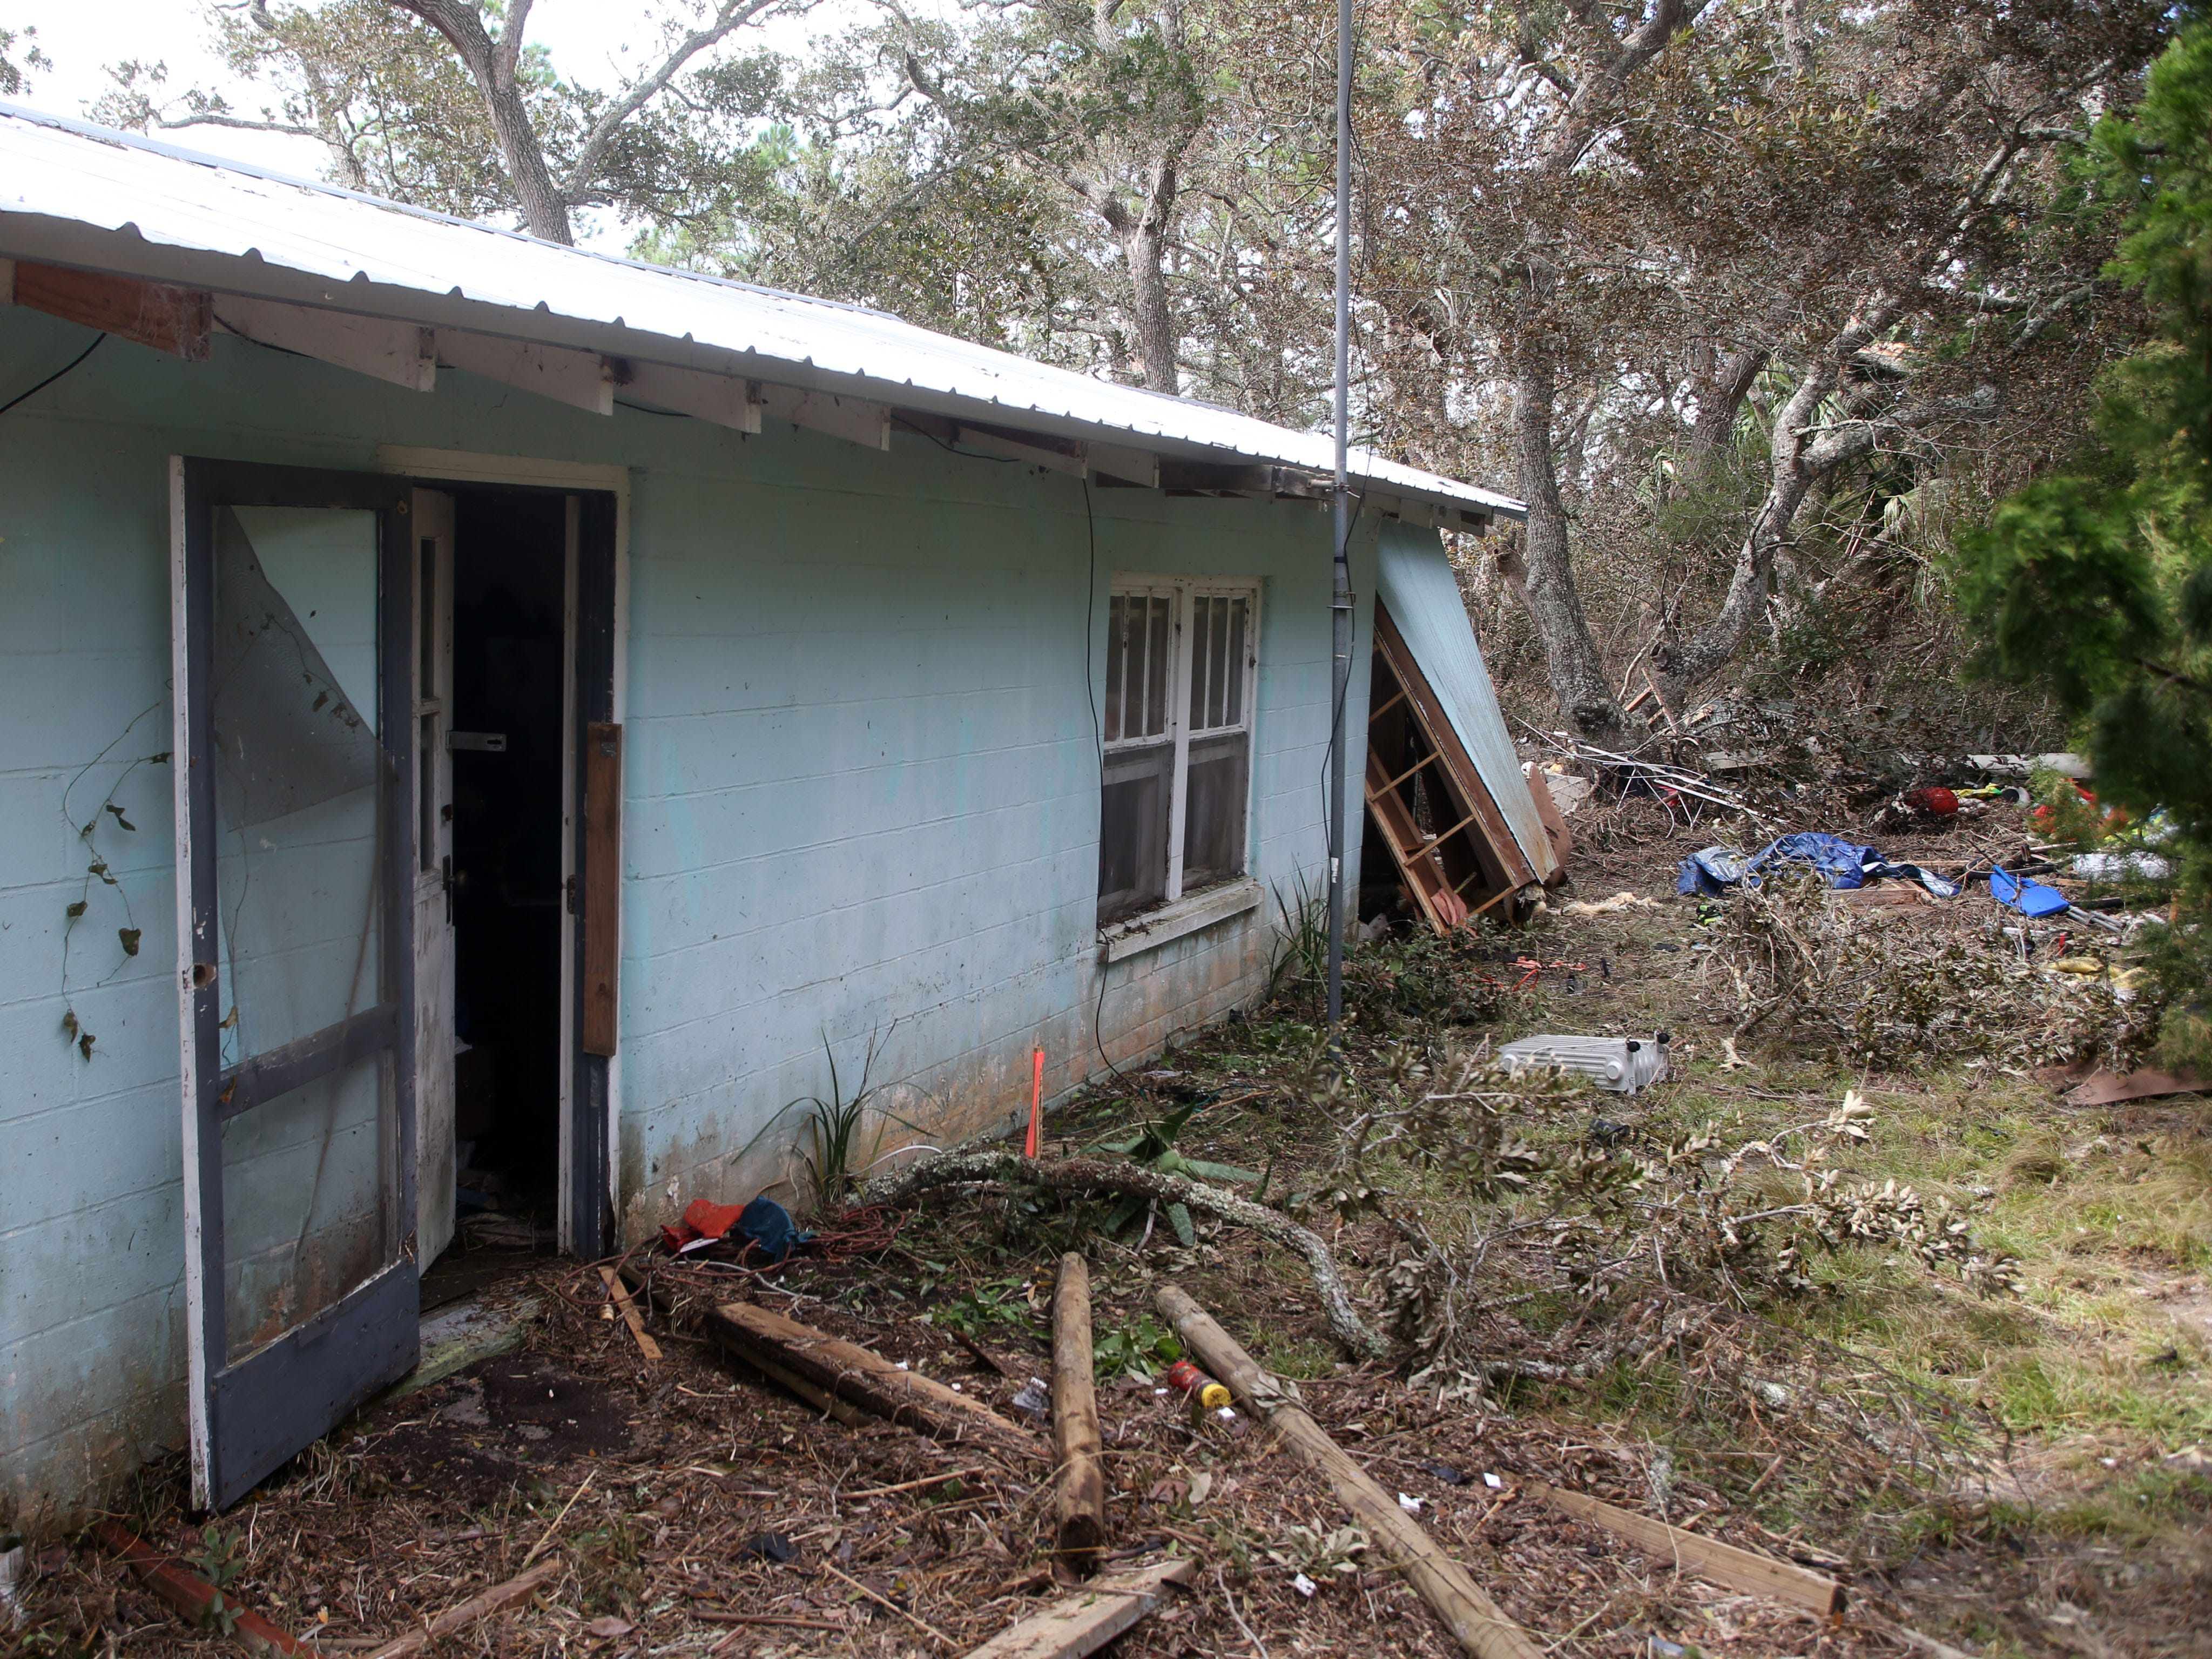 A home in Lanark Fla. has multiple walls blown out after Hurricane Michael on Monday, Oct. 15, 2018.